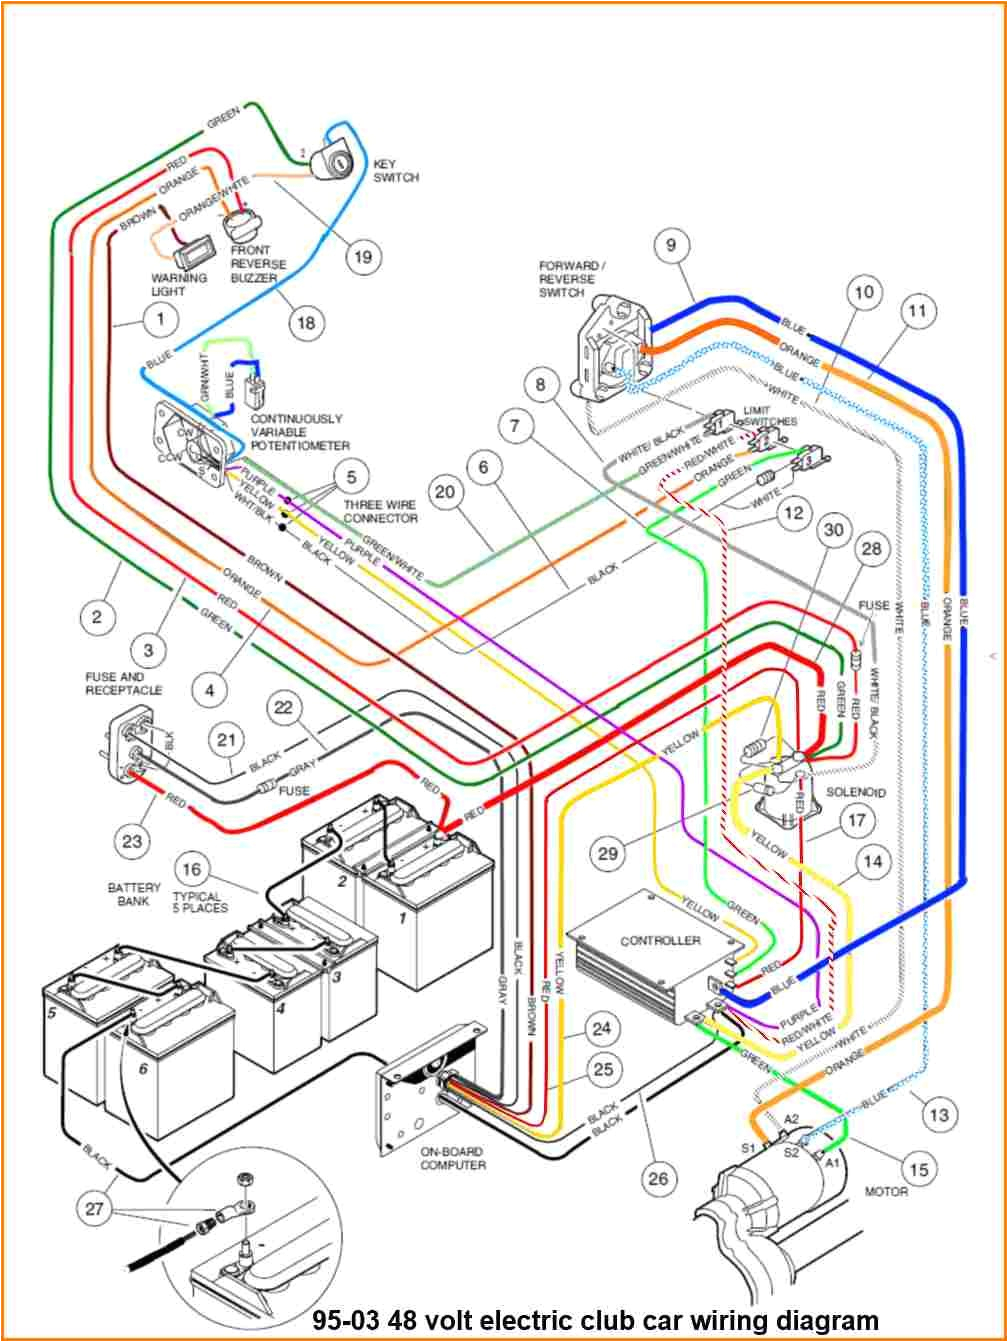 wiring diagram for 1999 yamaha electric 48 volt golf cart wiring wiring diagram for 1999 yamaha electric 48 volt golf cart